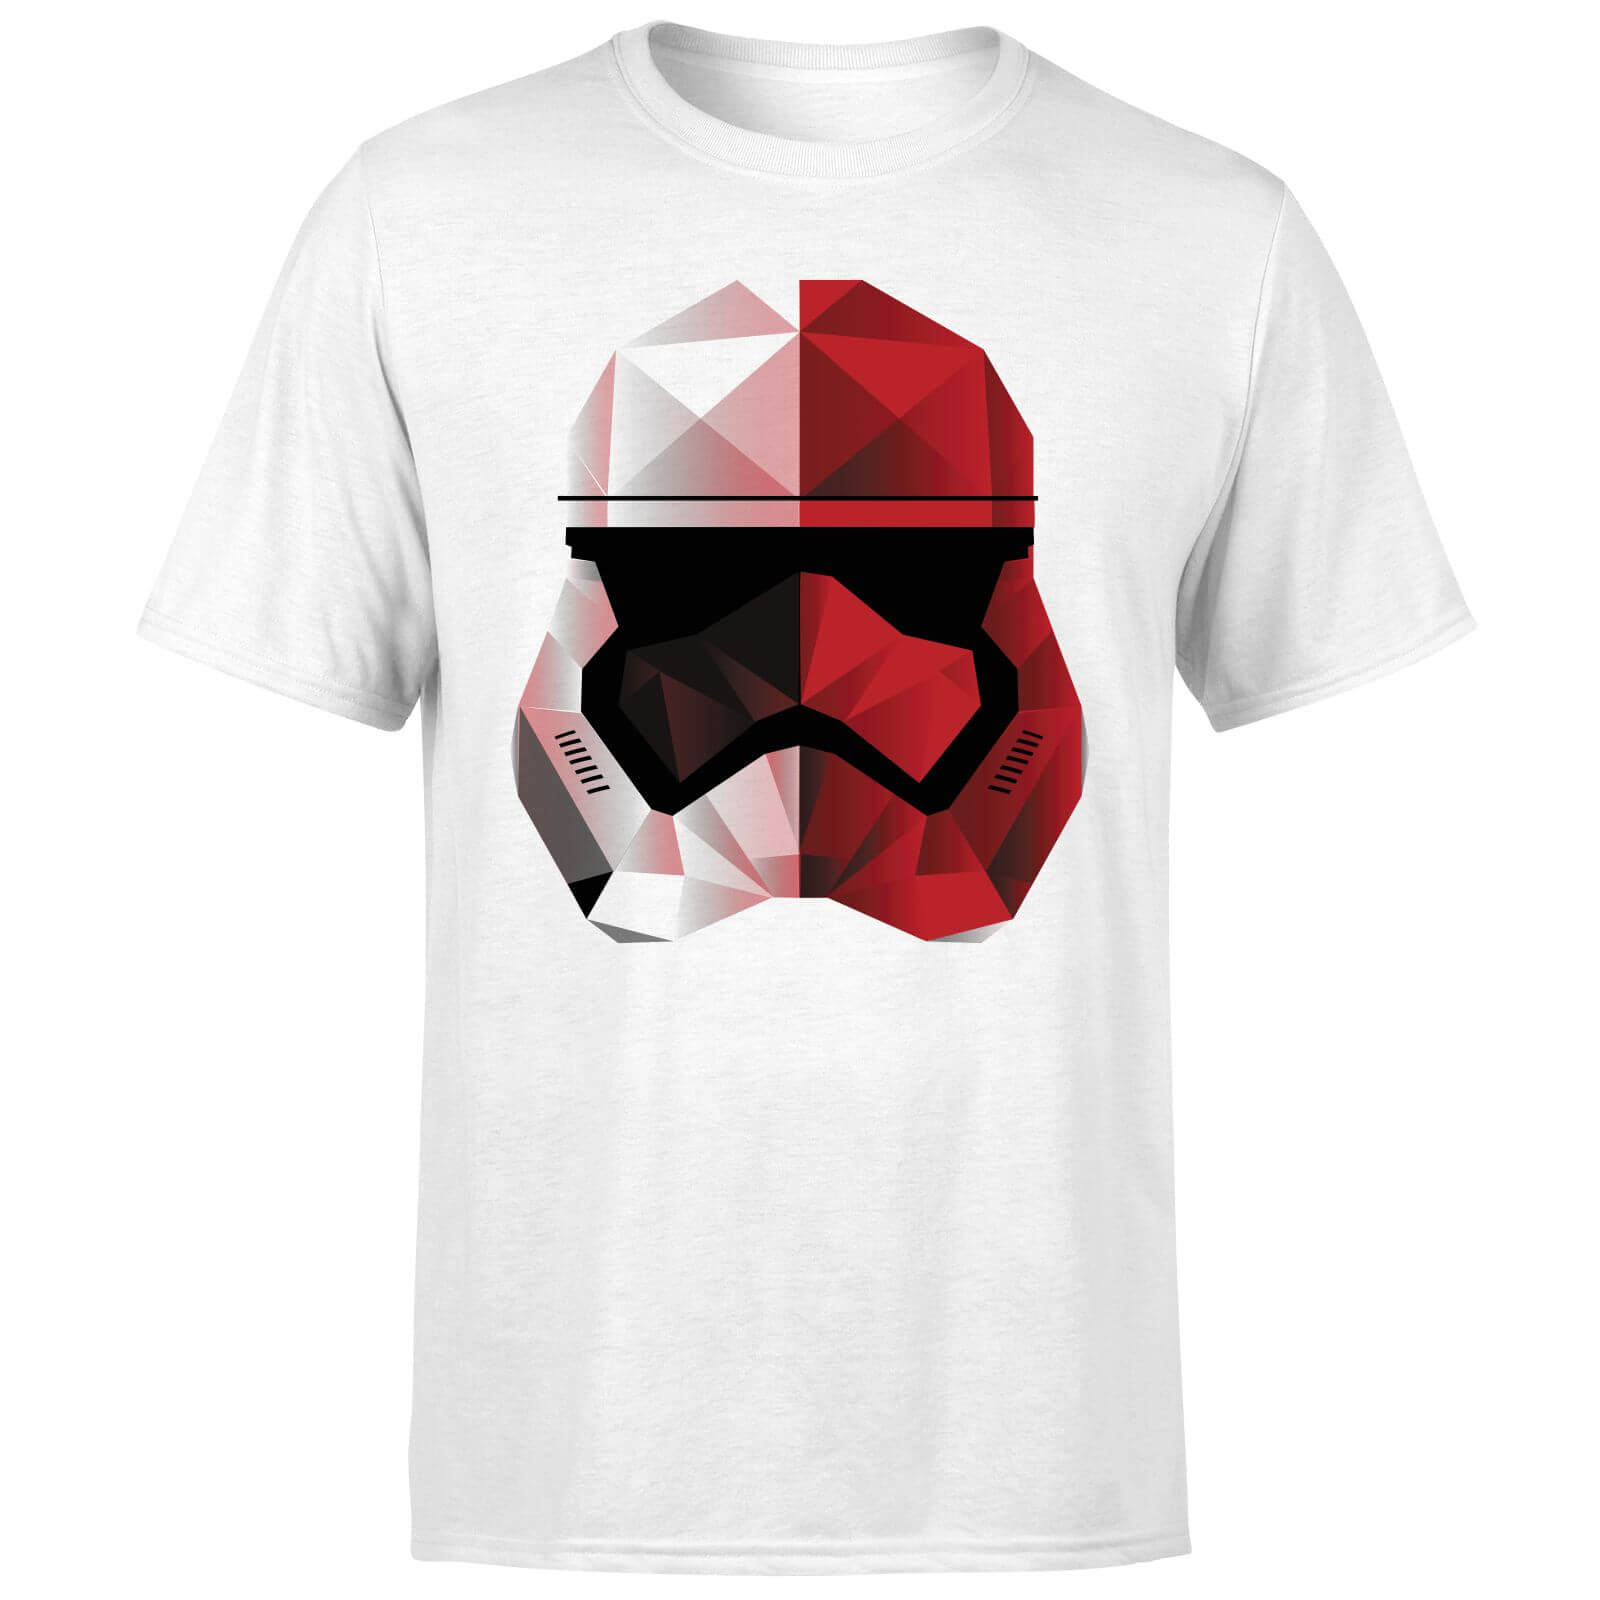 Star Wars Cubist Trooper Helmet White T-Shirt - White